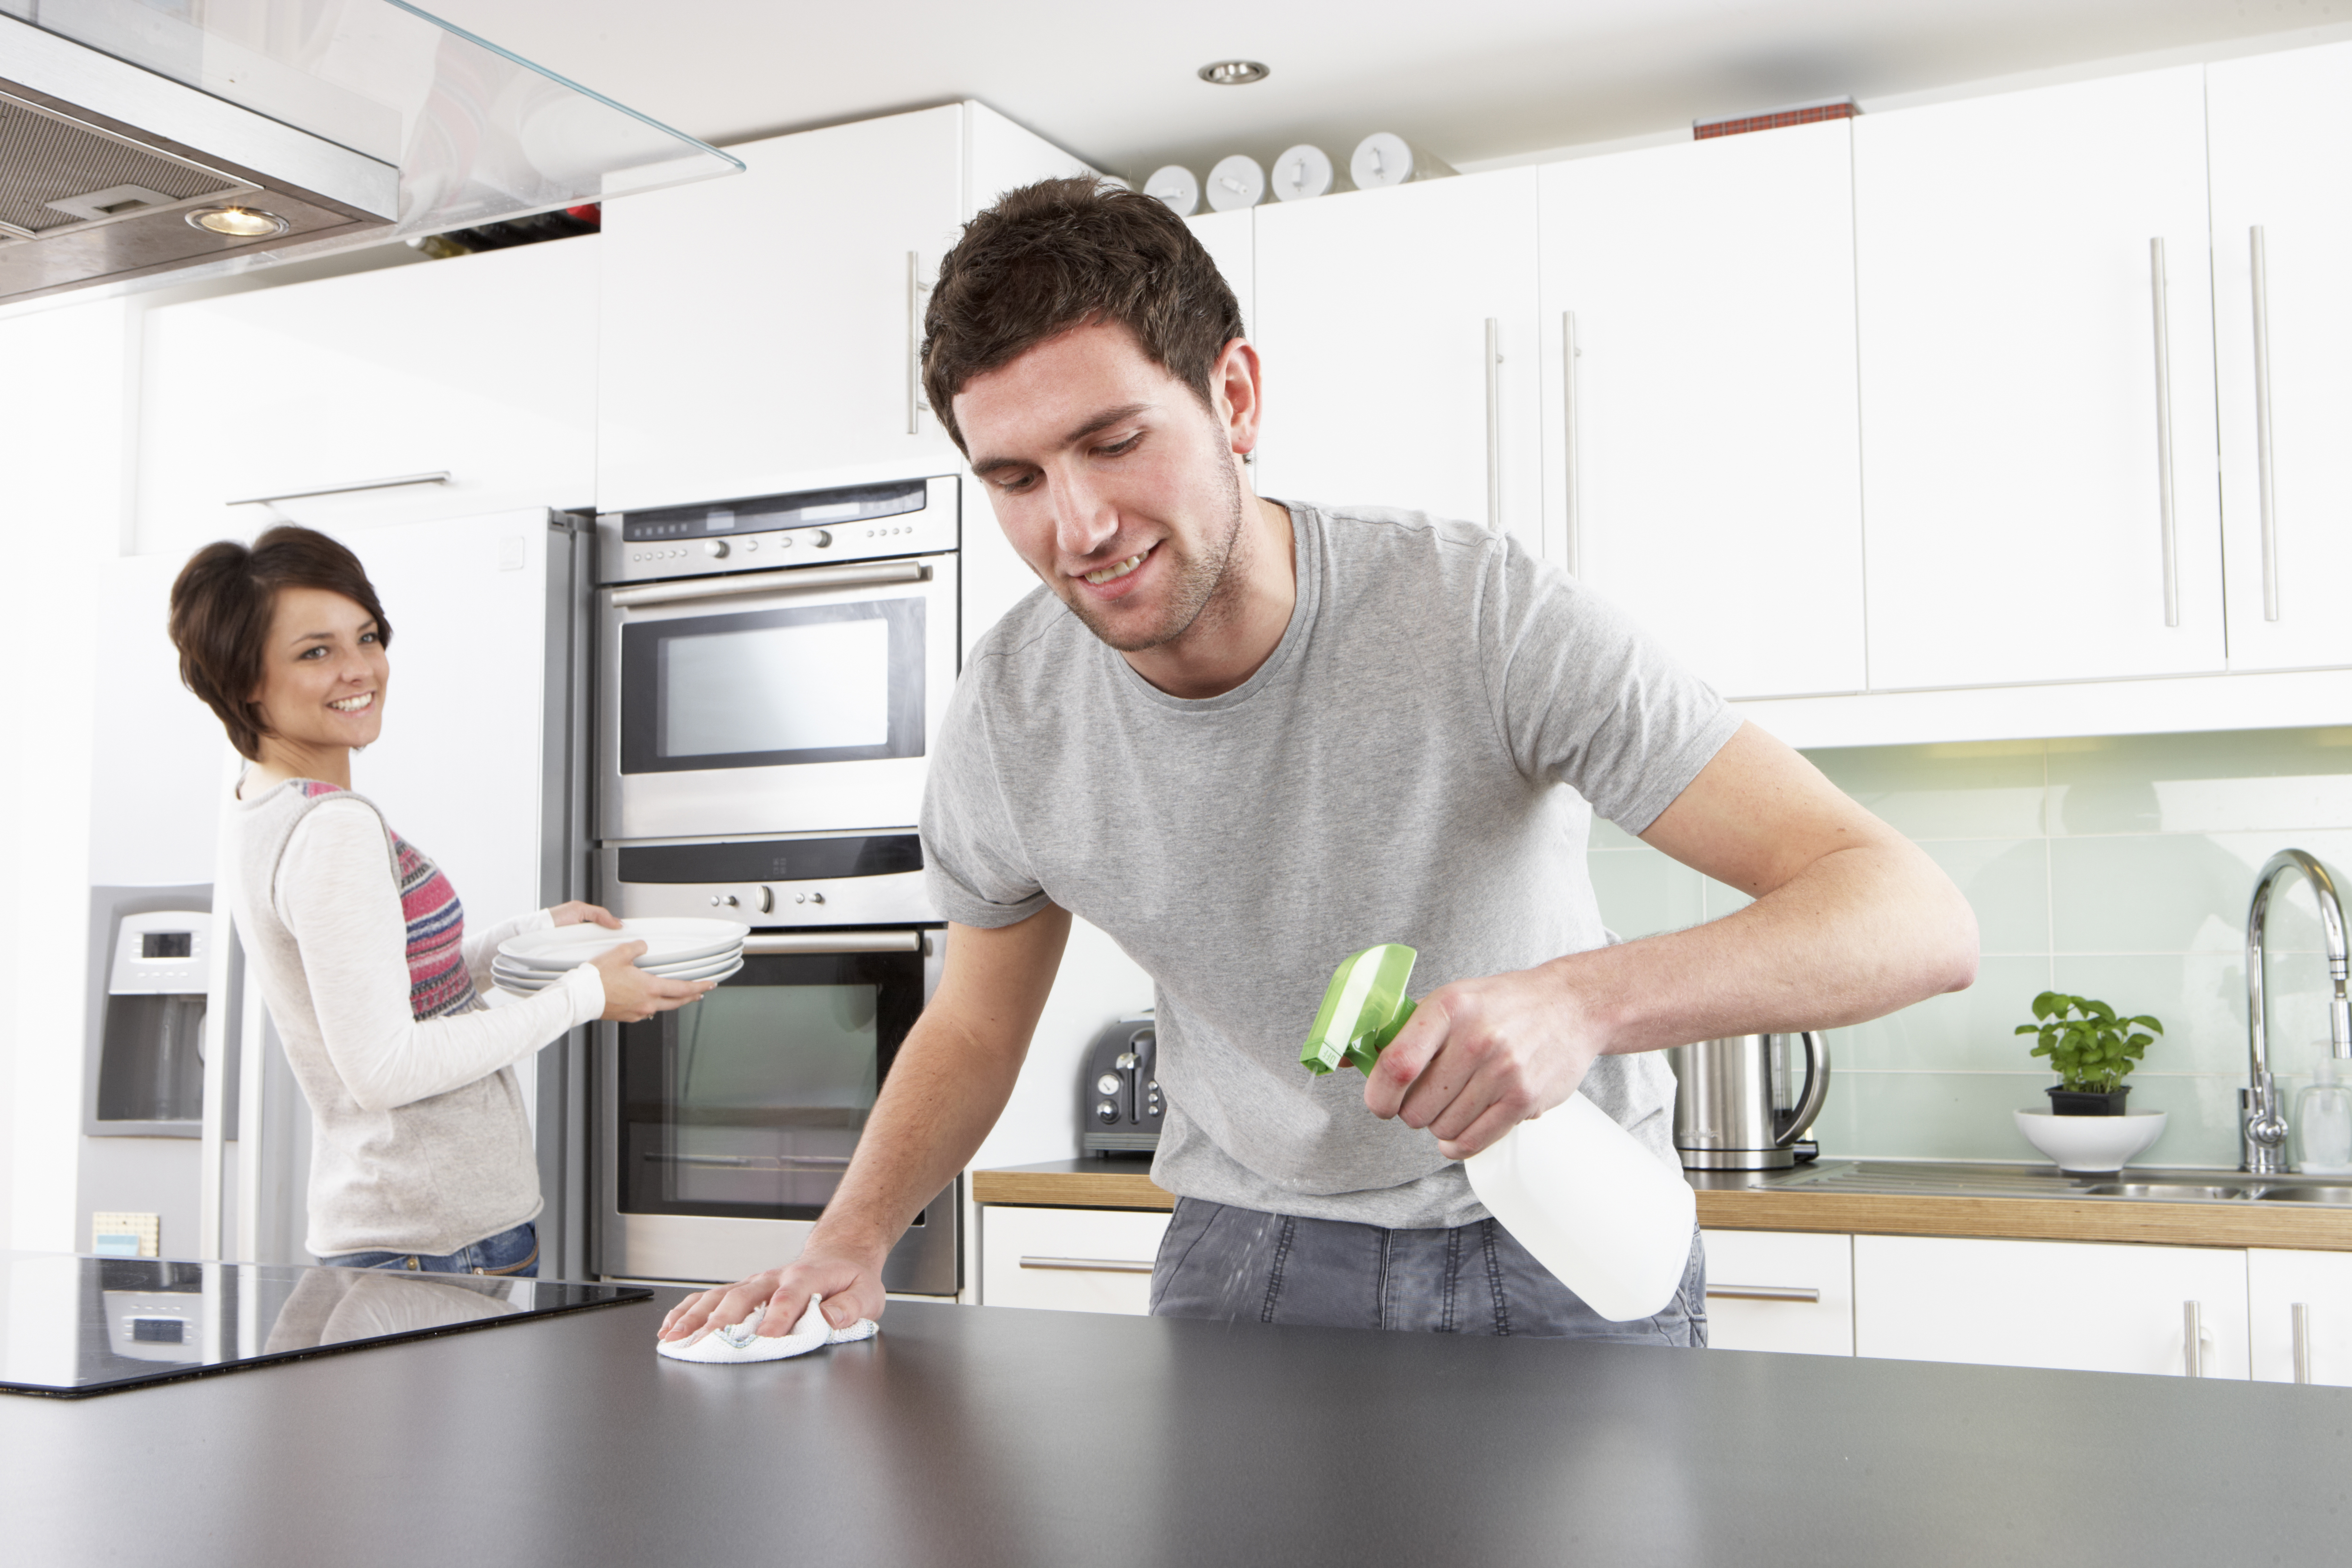 5 Steps to a Clean Kitchen | realestatepue